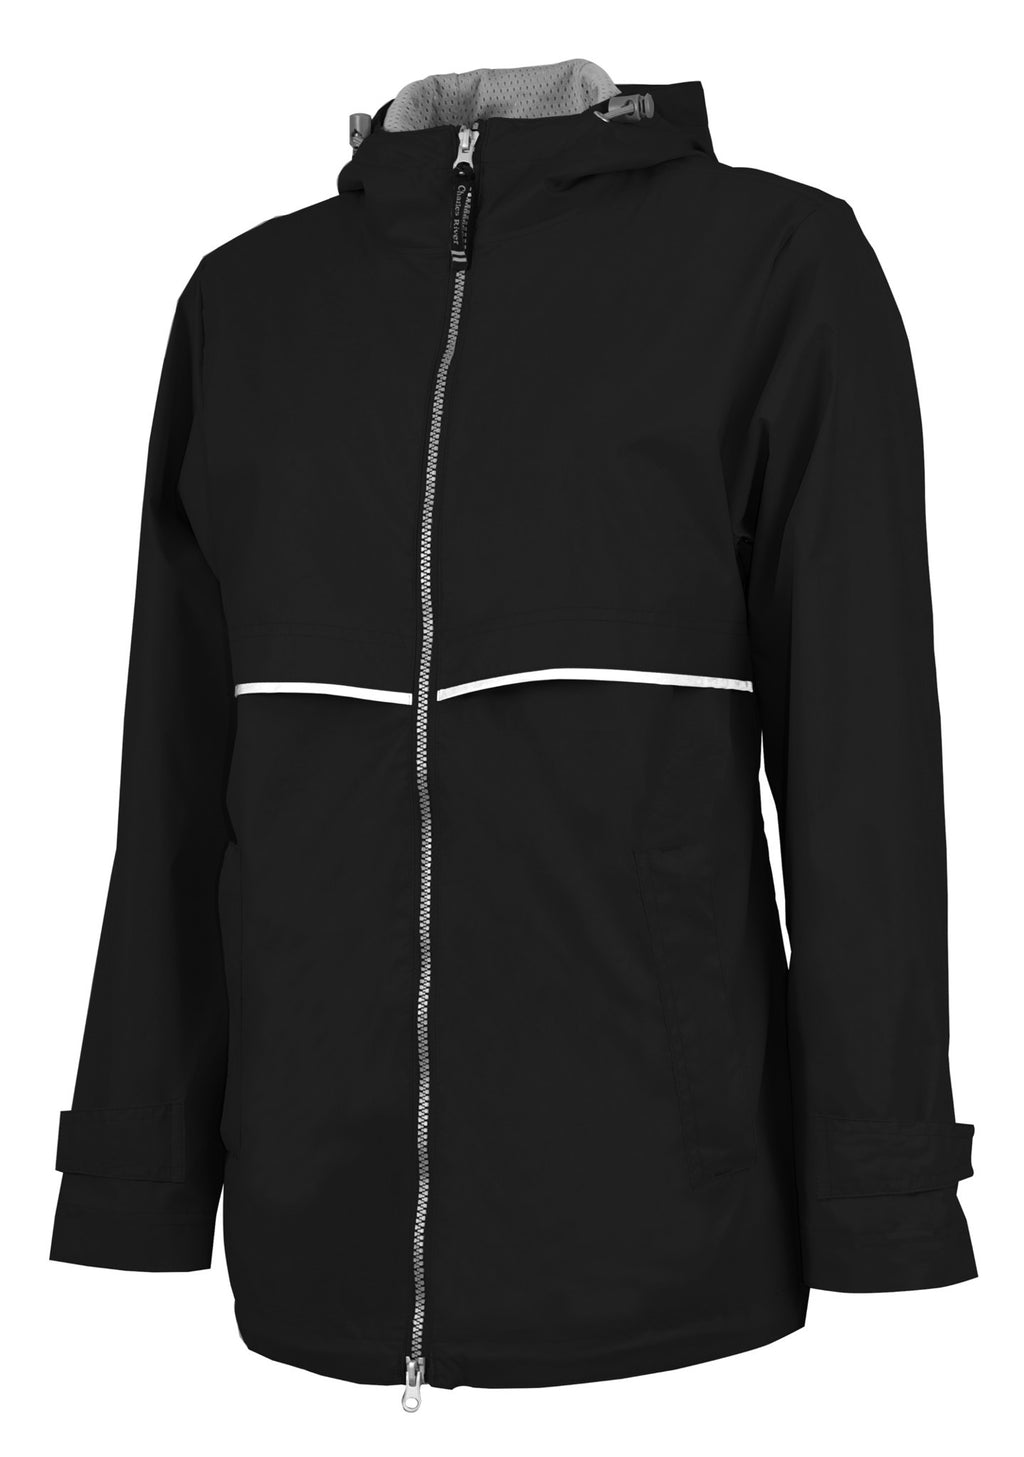 Charles River Rain Jacket w/ Monogram- Fall Colors Black